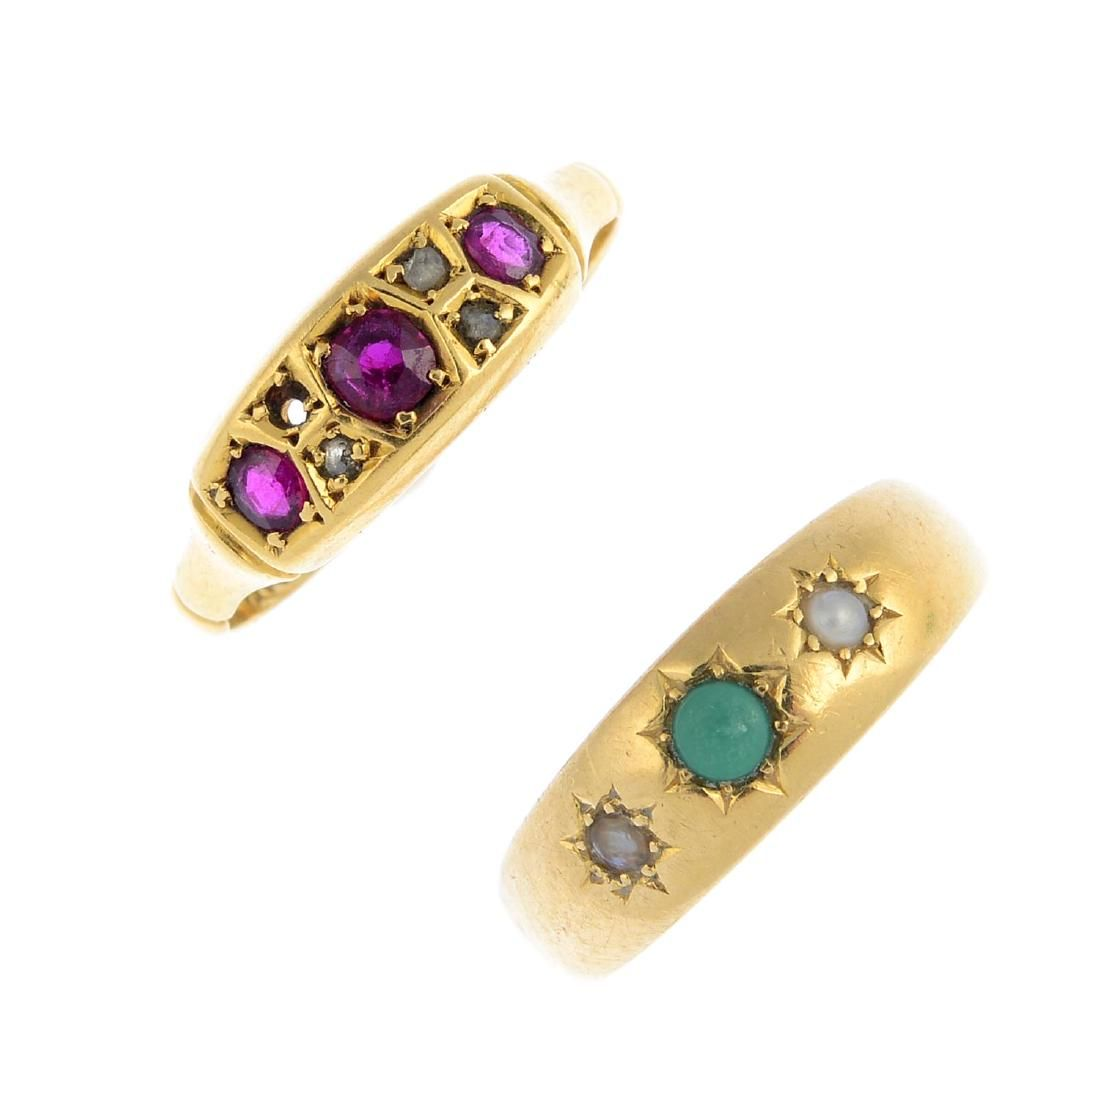 Two 18ct gold gem-set rings. To include a late